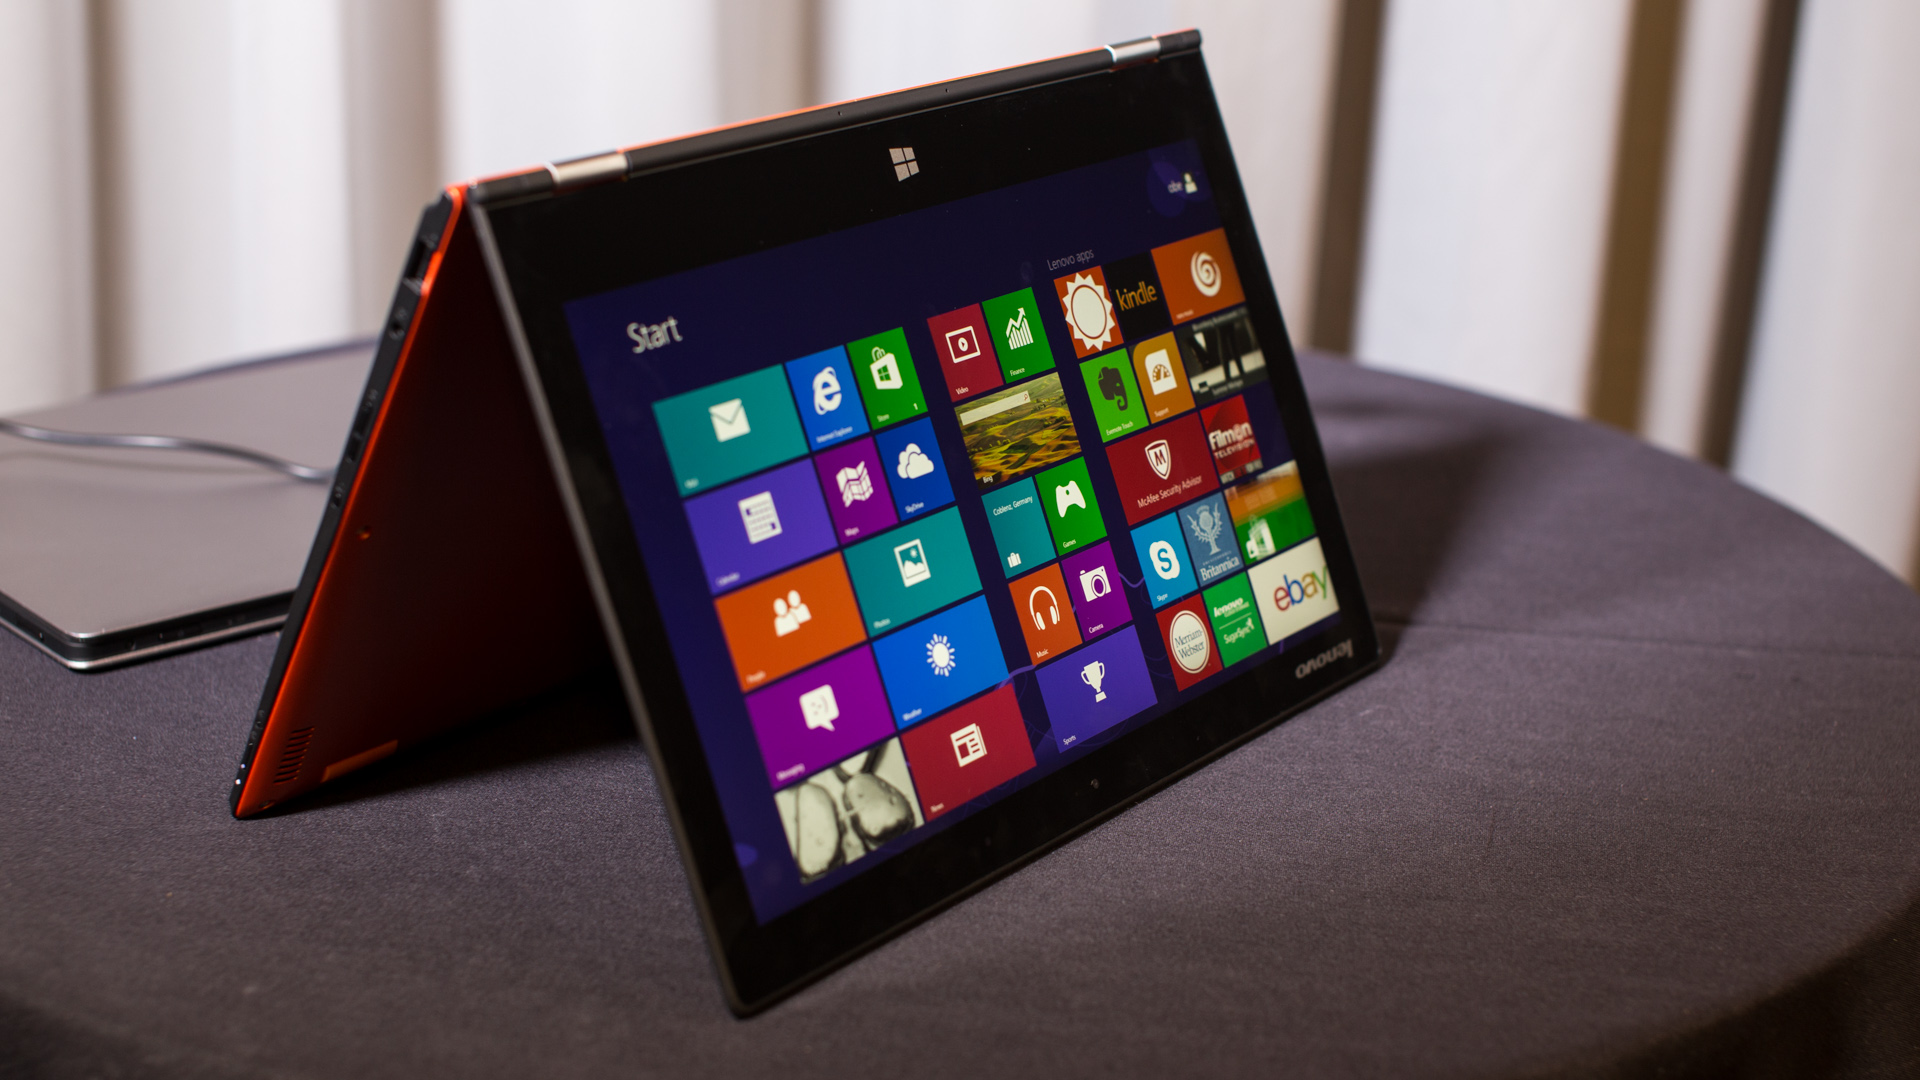 Hands-On with the Lenovo Yoga 2 Pro